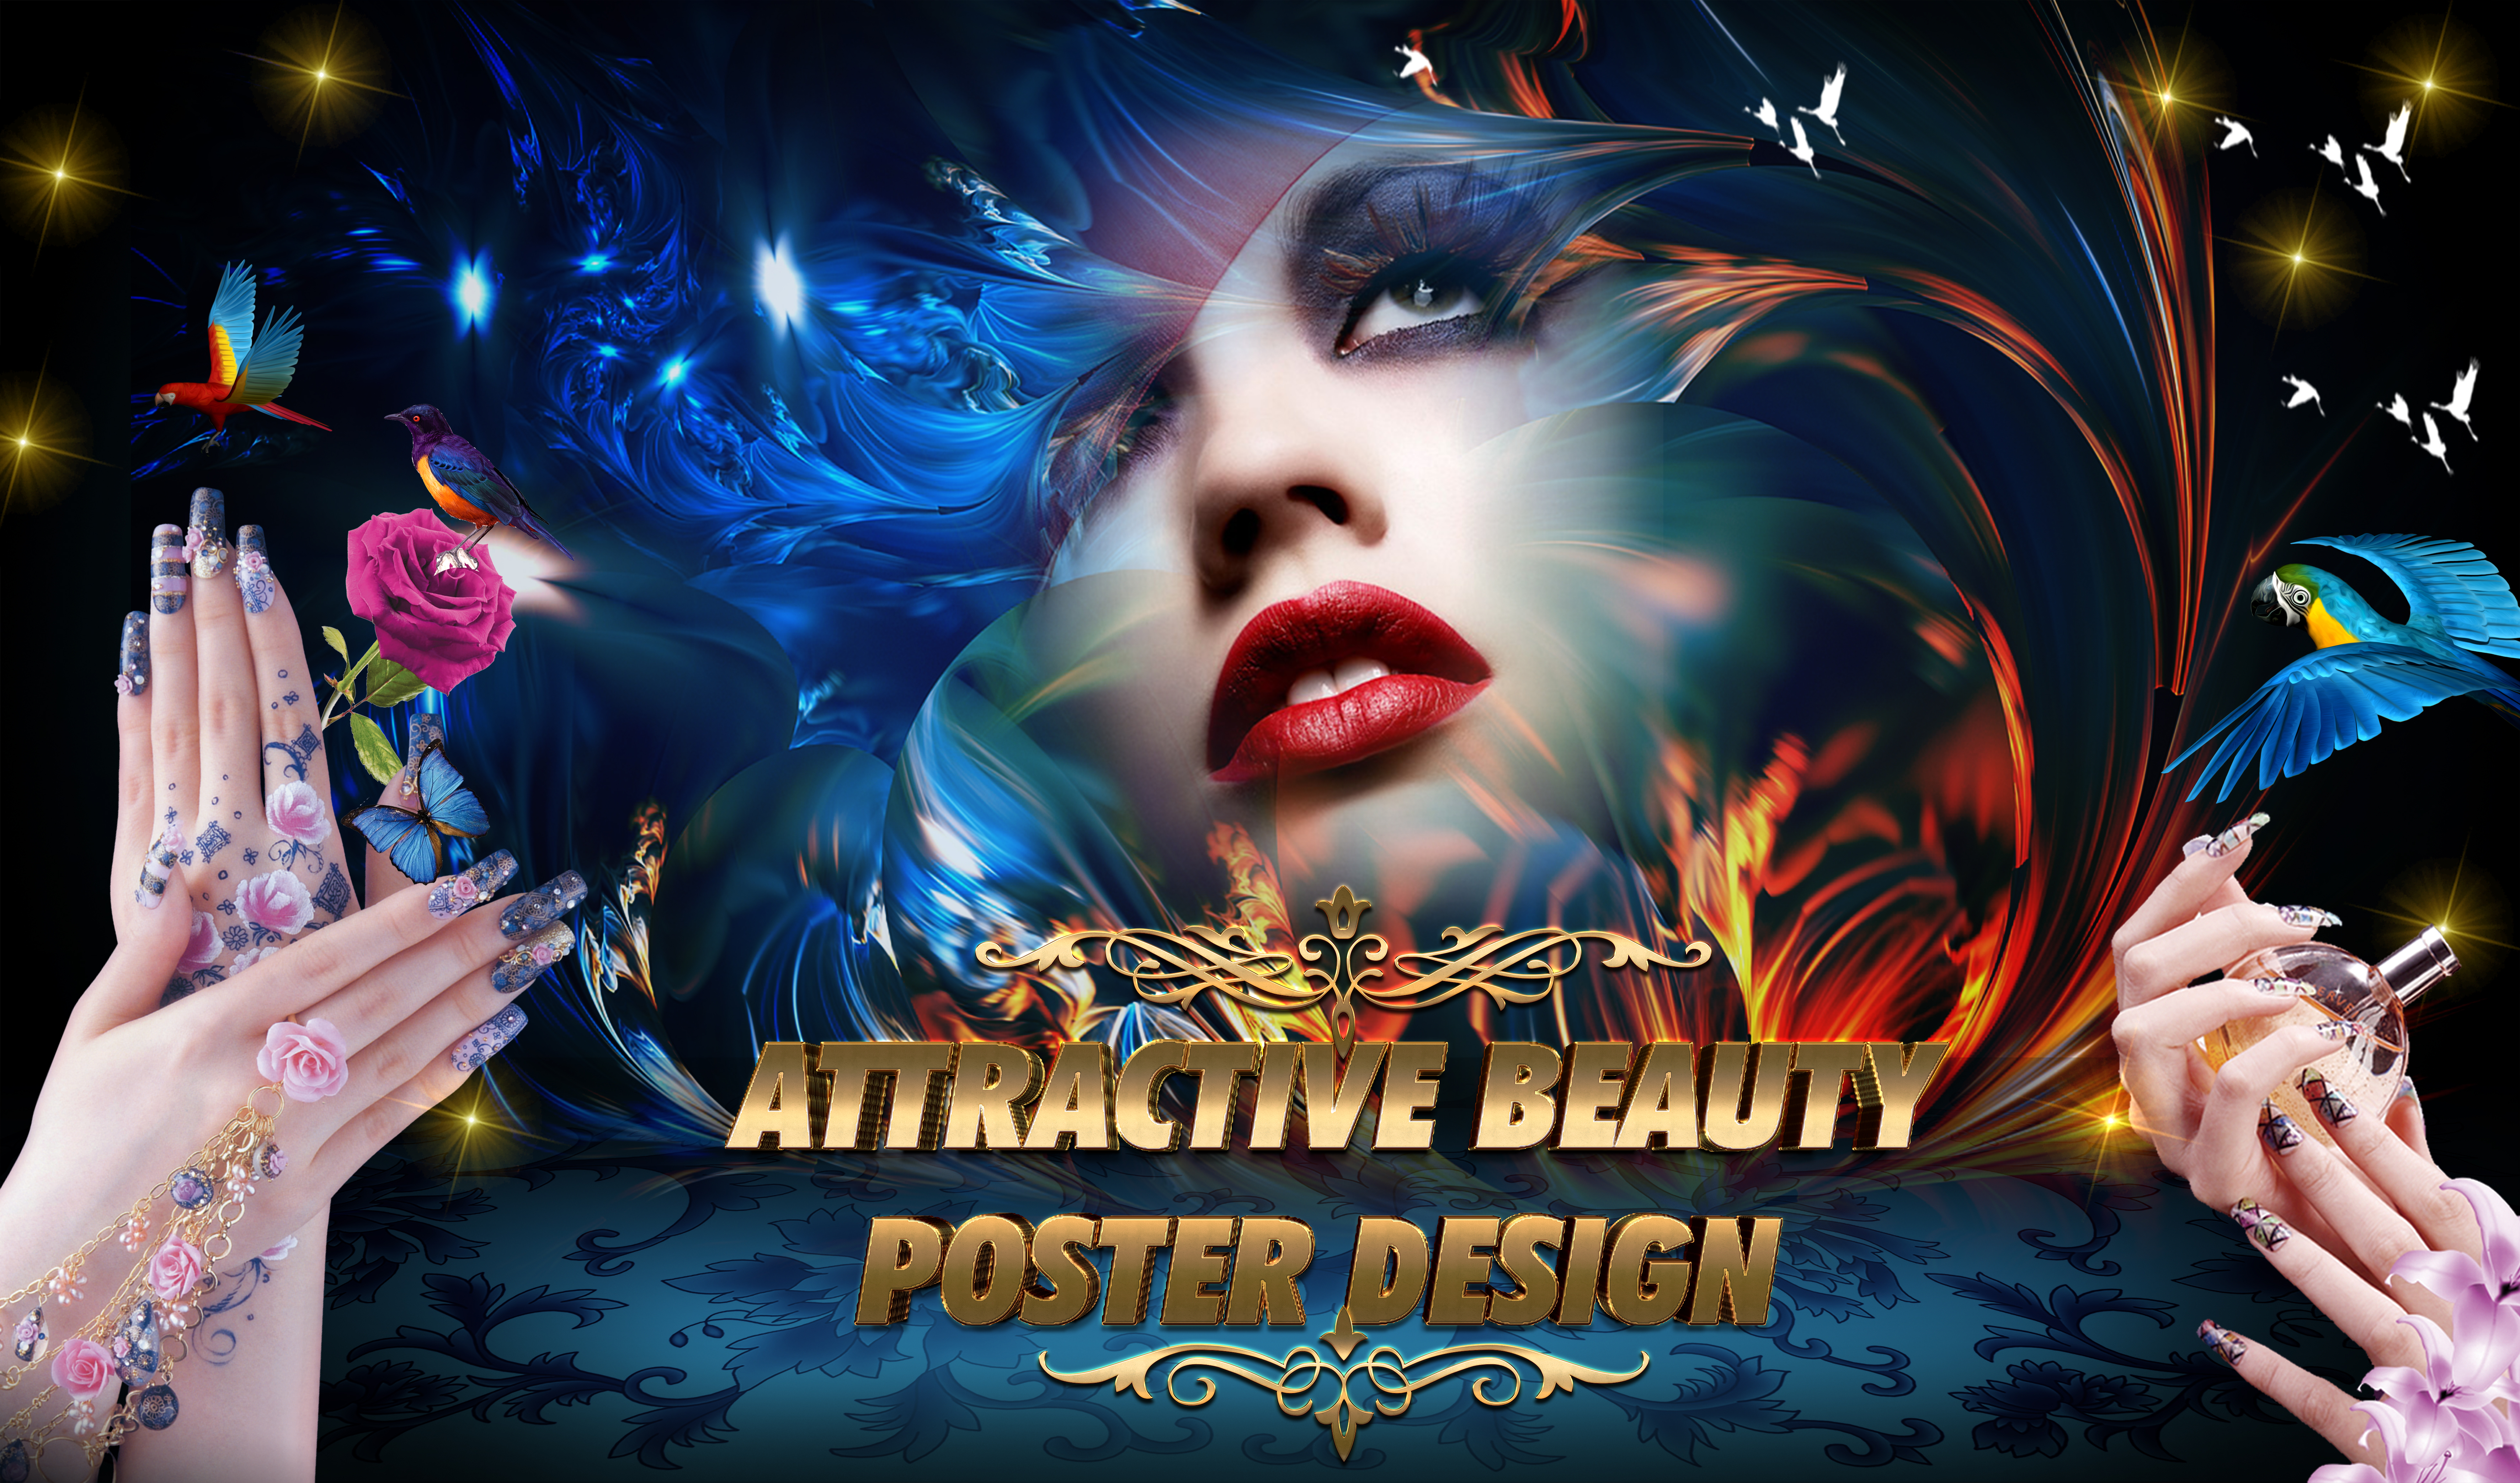 I will design attractive beauty poster and flyers